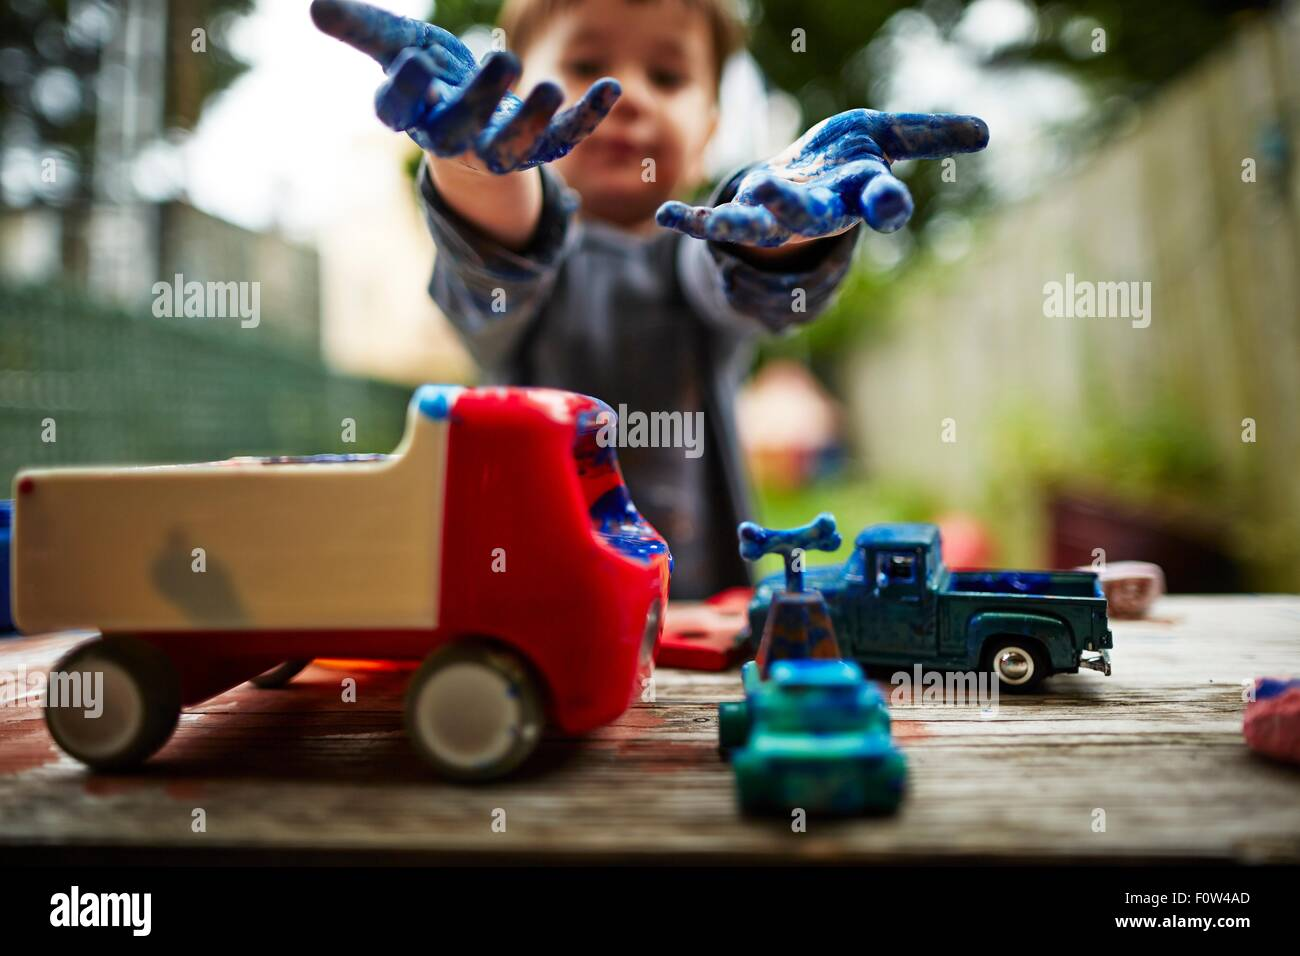 Boy playing with toy trucks and watercolour - Stock Image